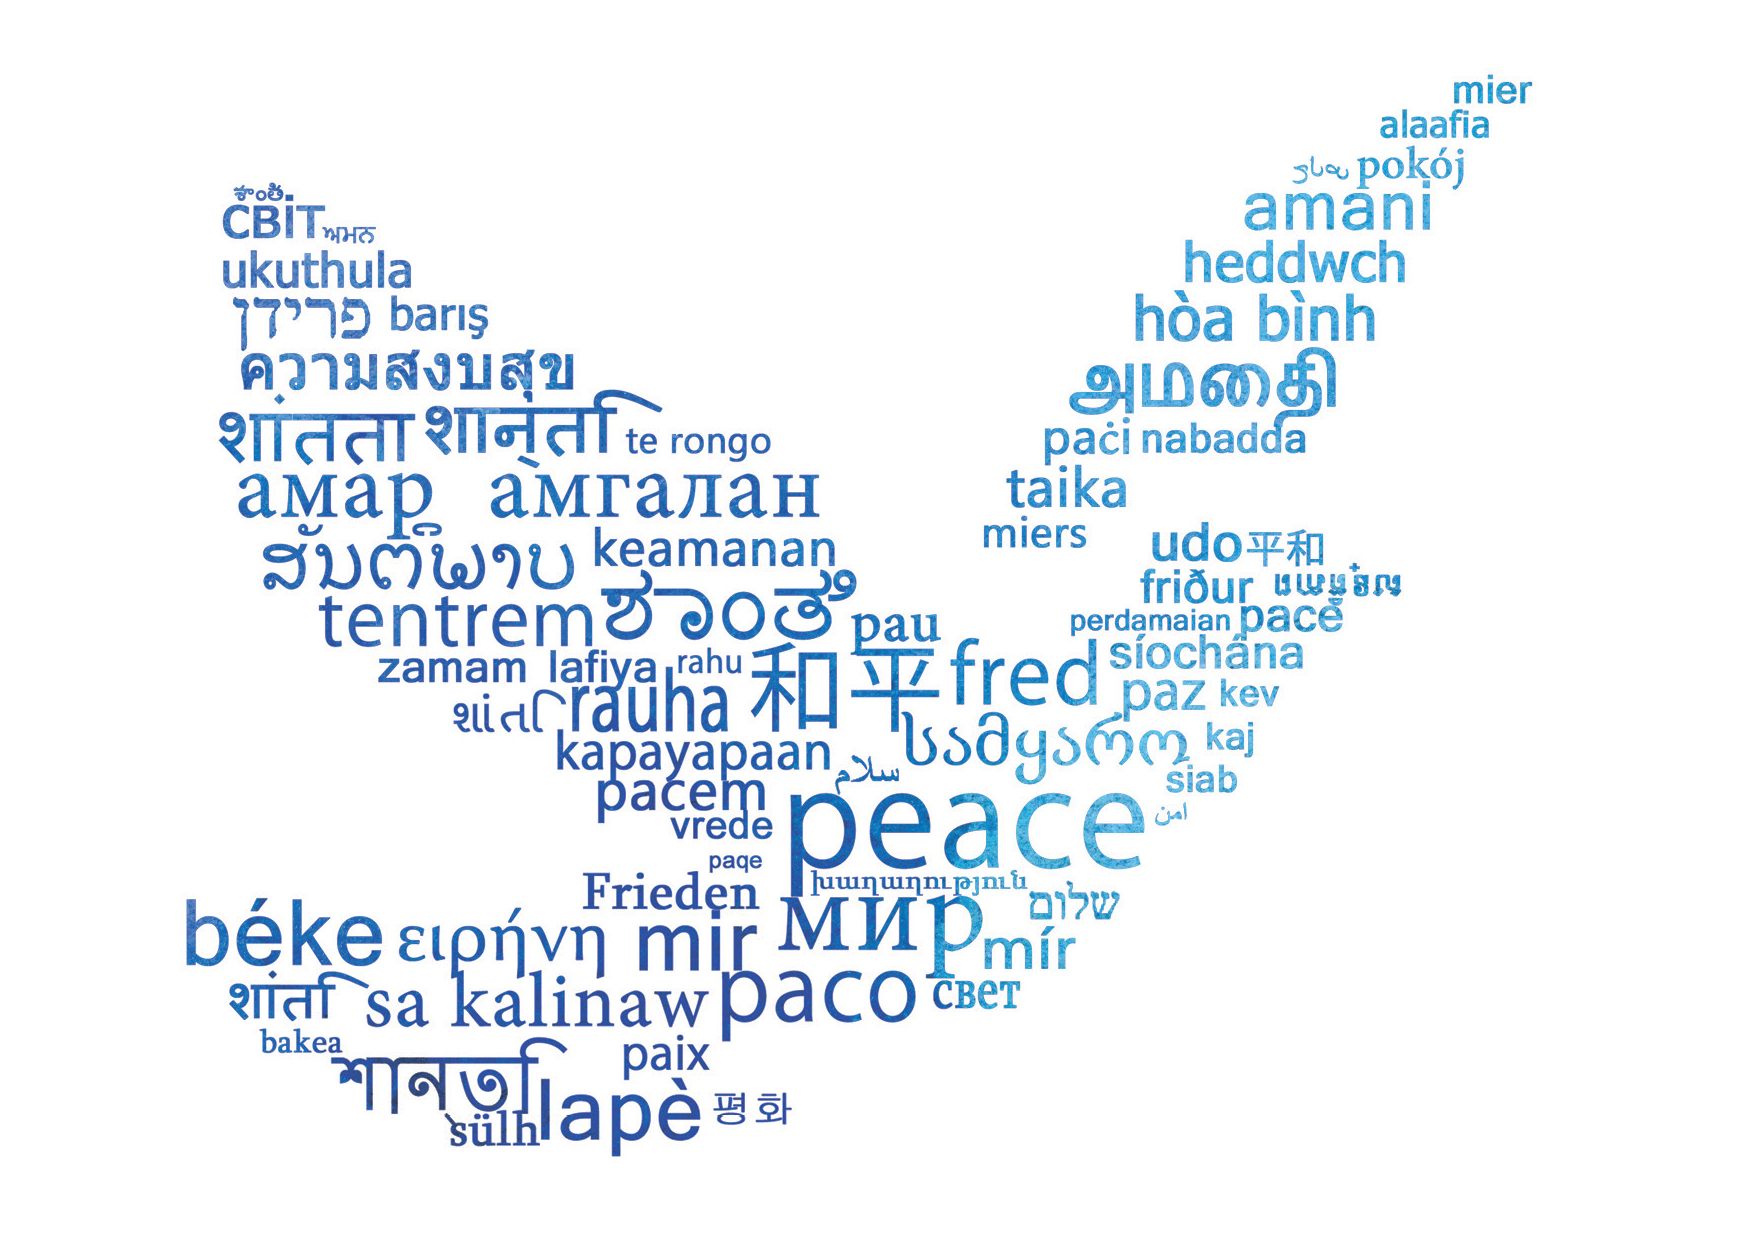 Peace symbol with dove